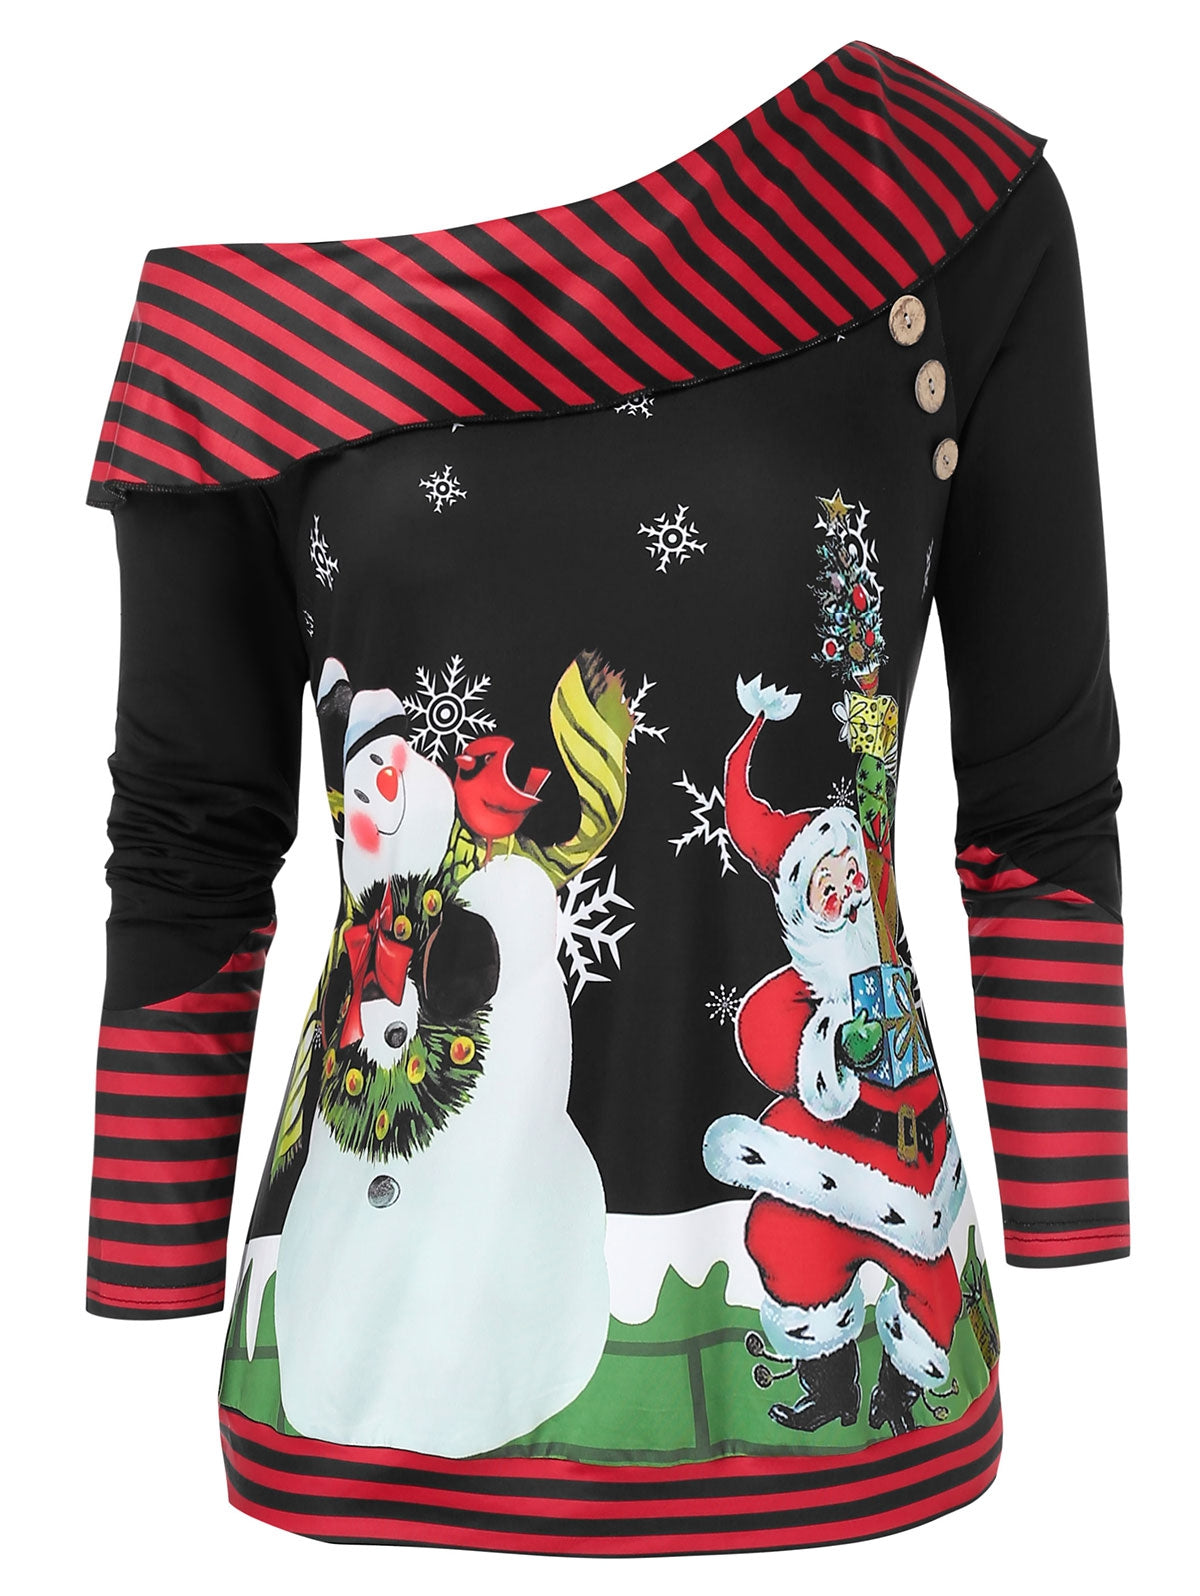 Plus Size Christmas Skew Neck Snowman Santa Claus Sweatshirt